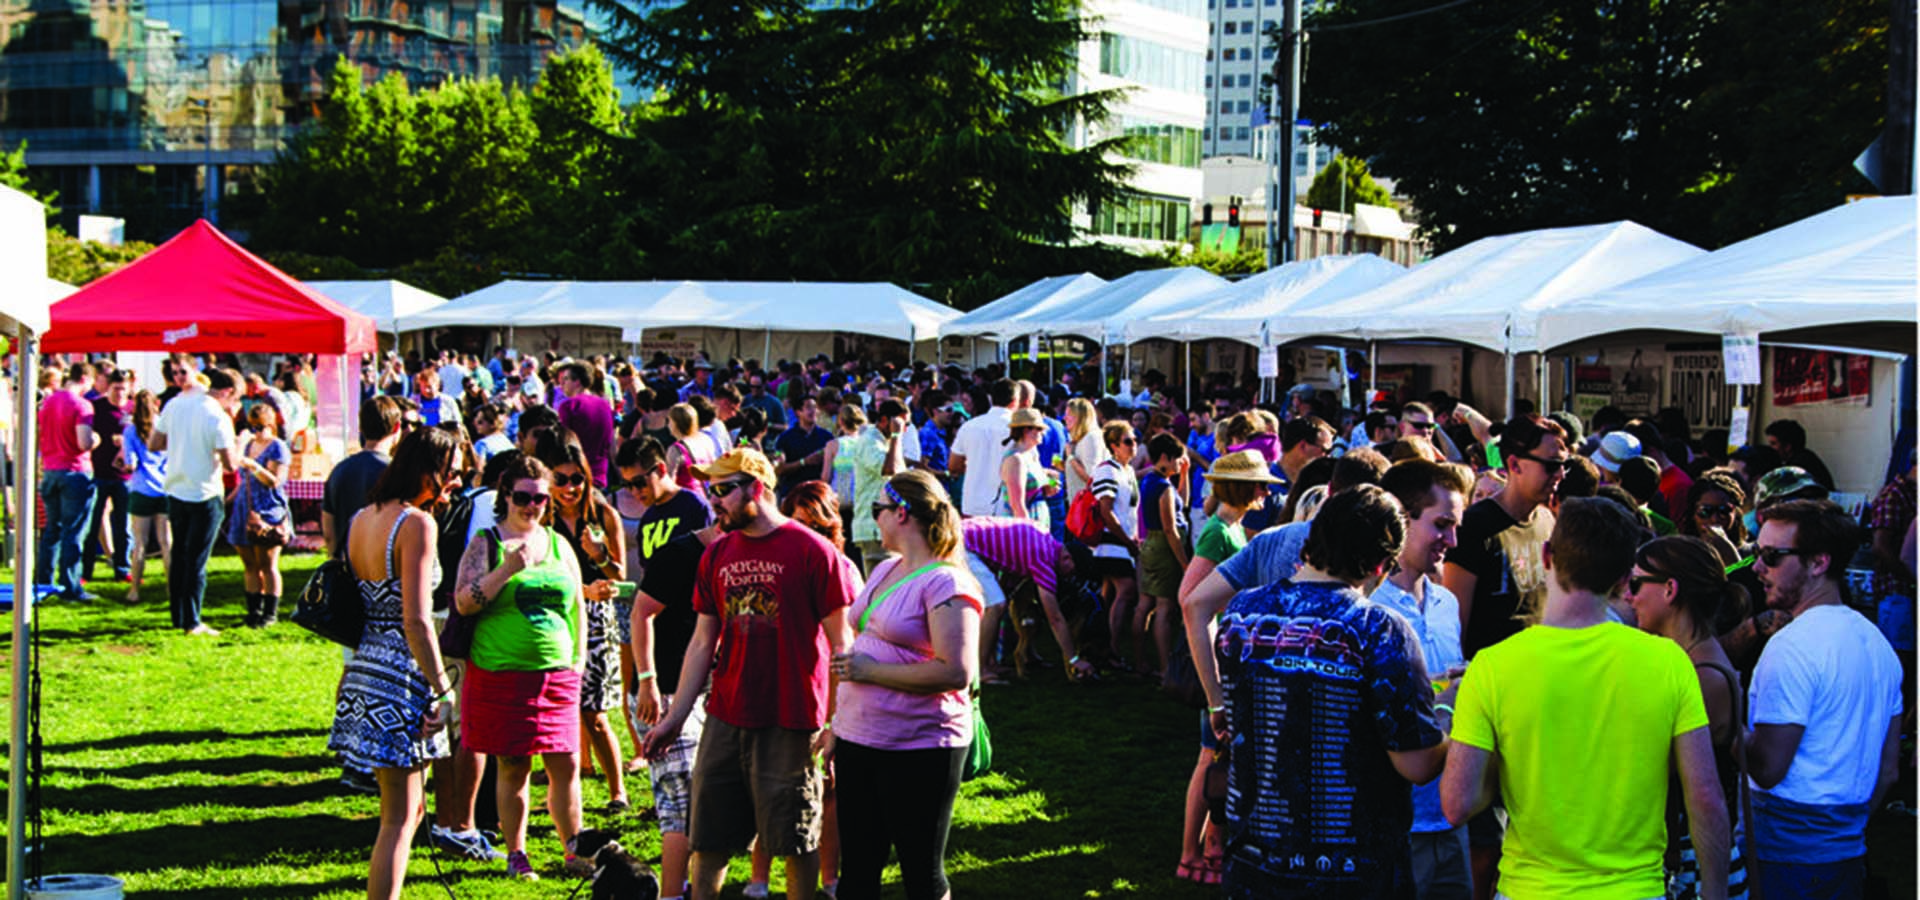 Outdoor cider festival with crowds drinking and tasting ciders.